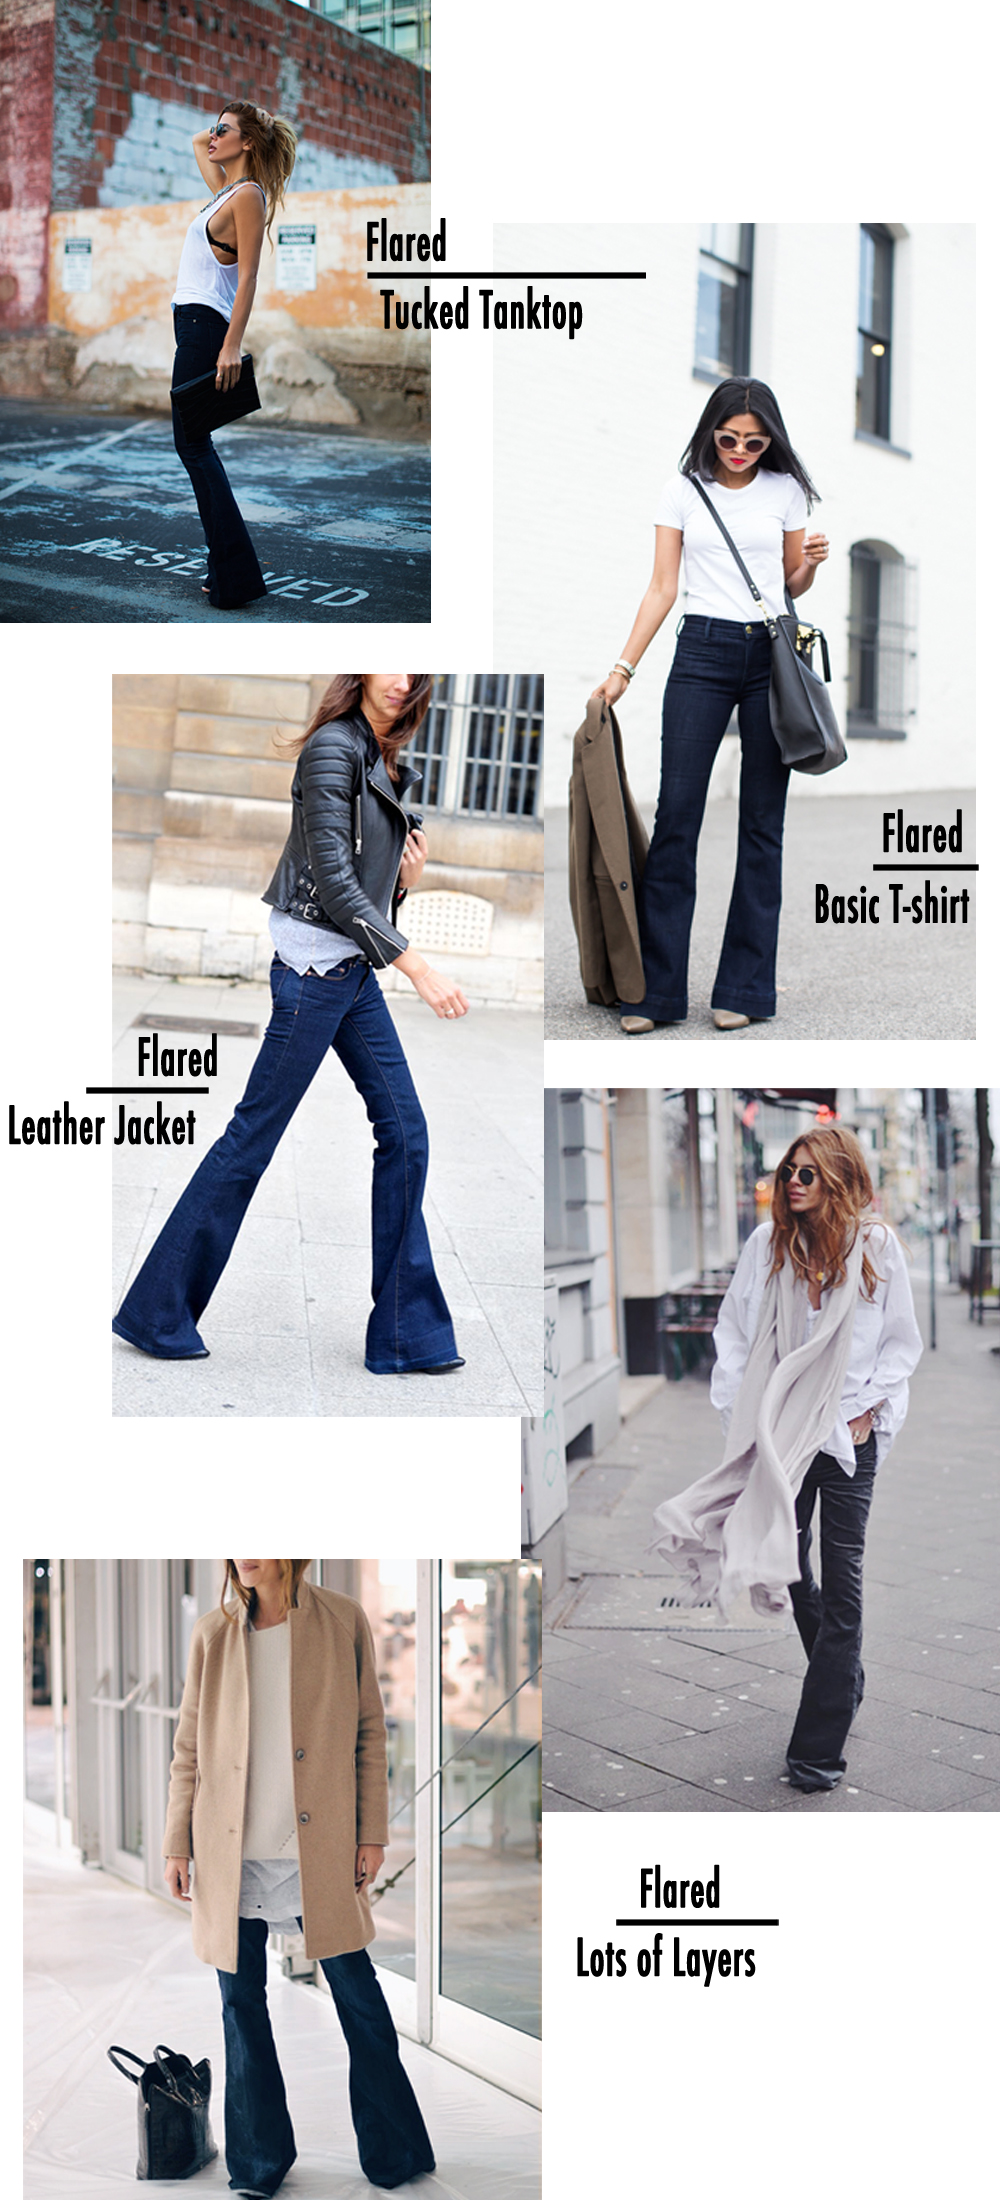 Soophisticated_Flared_Jeans_